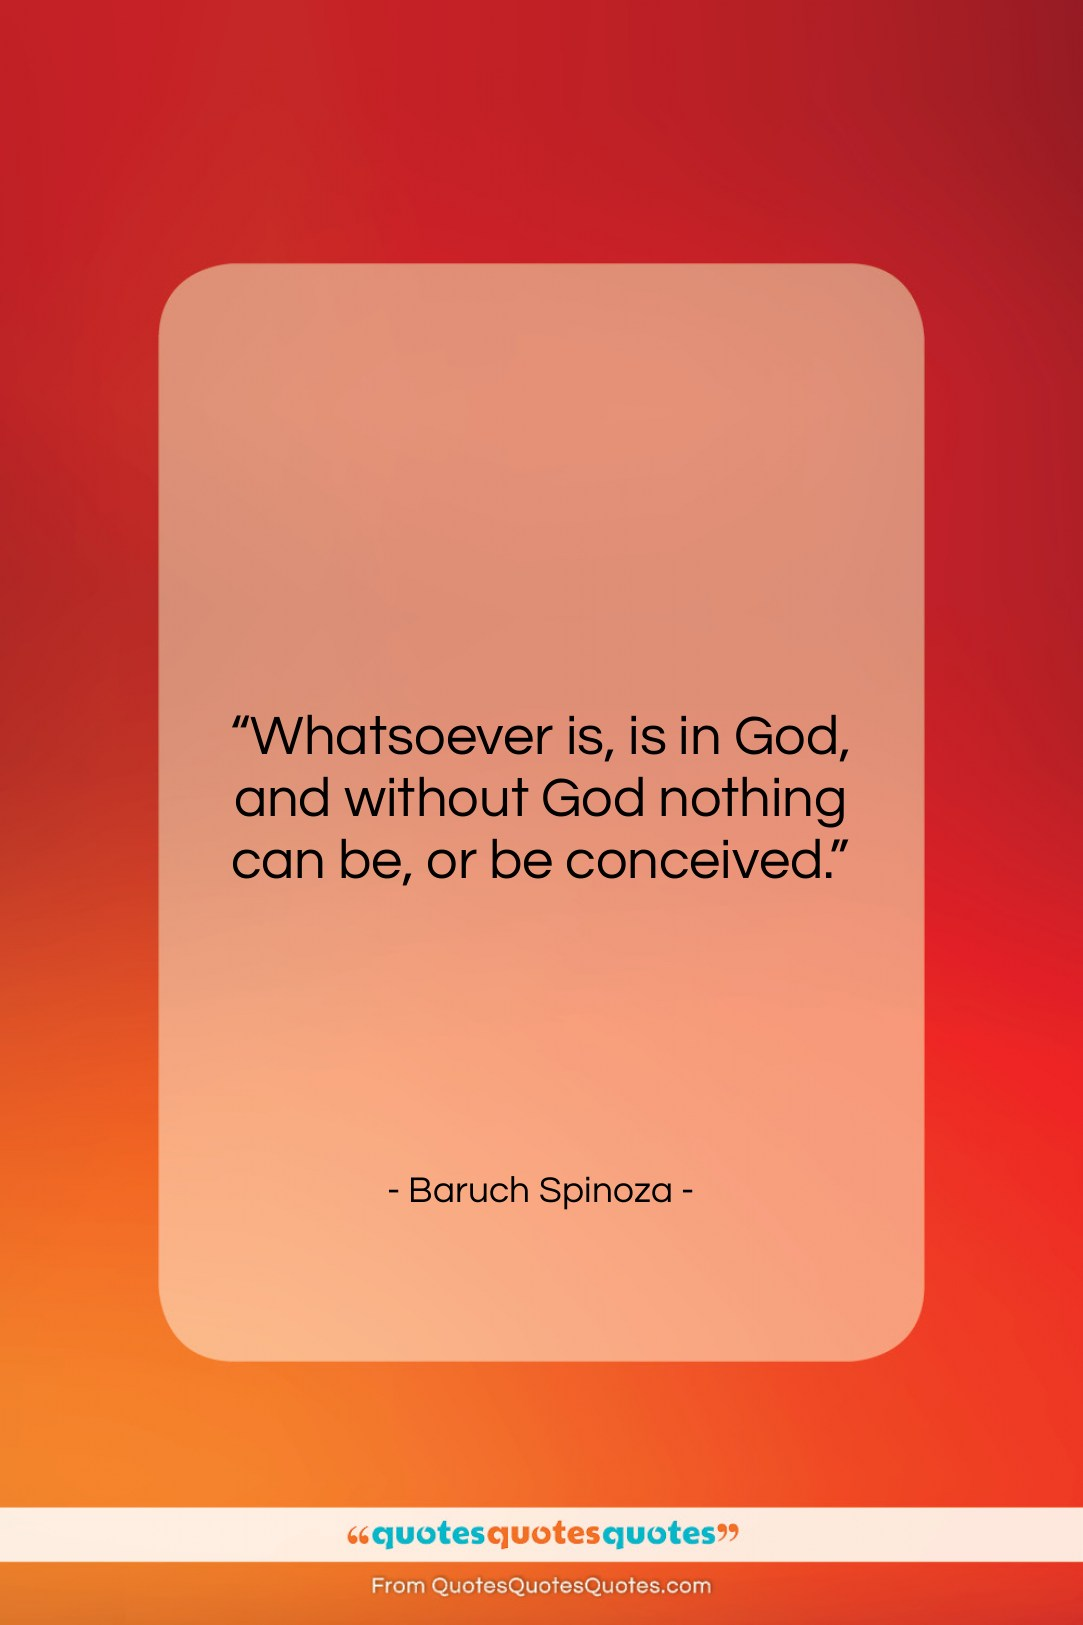 """Baruch Spinoza quote: """"Whatsoever is, is in God, and without…""""- at QuotesQuotesQuotes.com"""